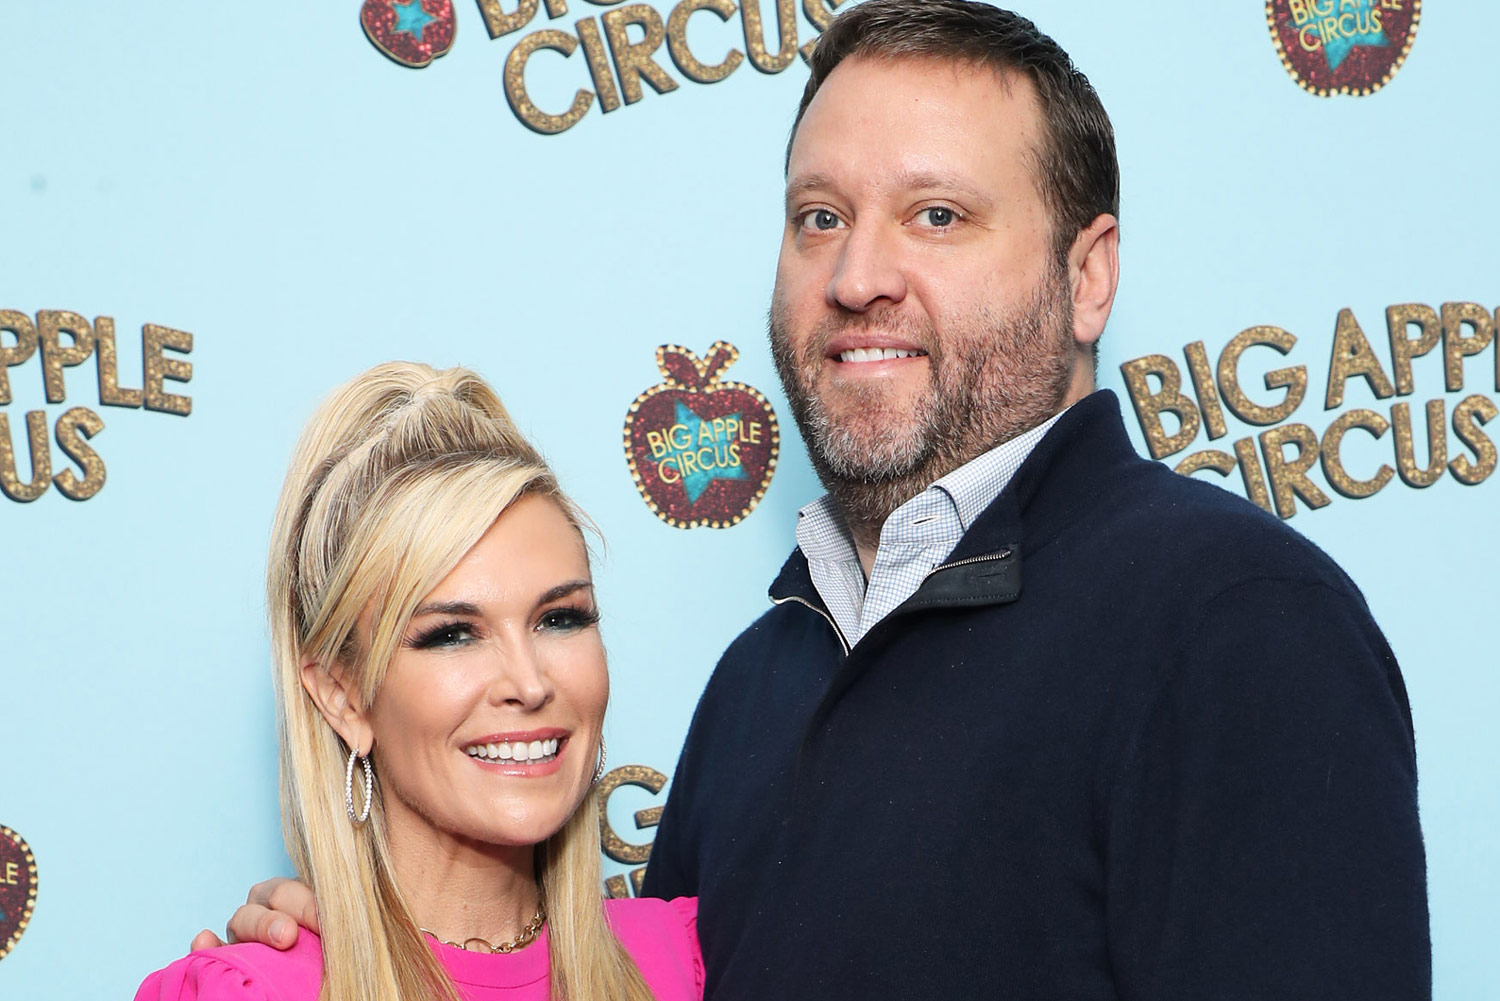 Who is Tinsley Mortimer dating?